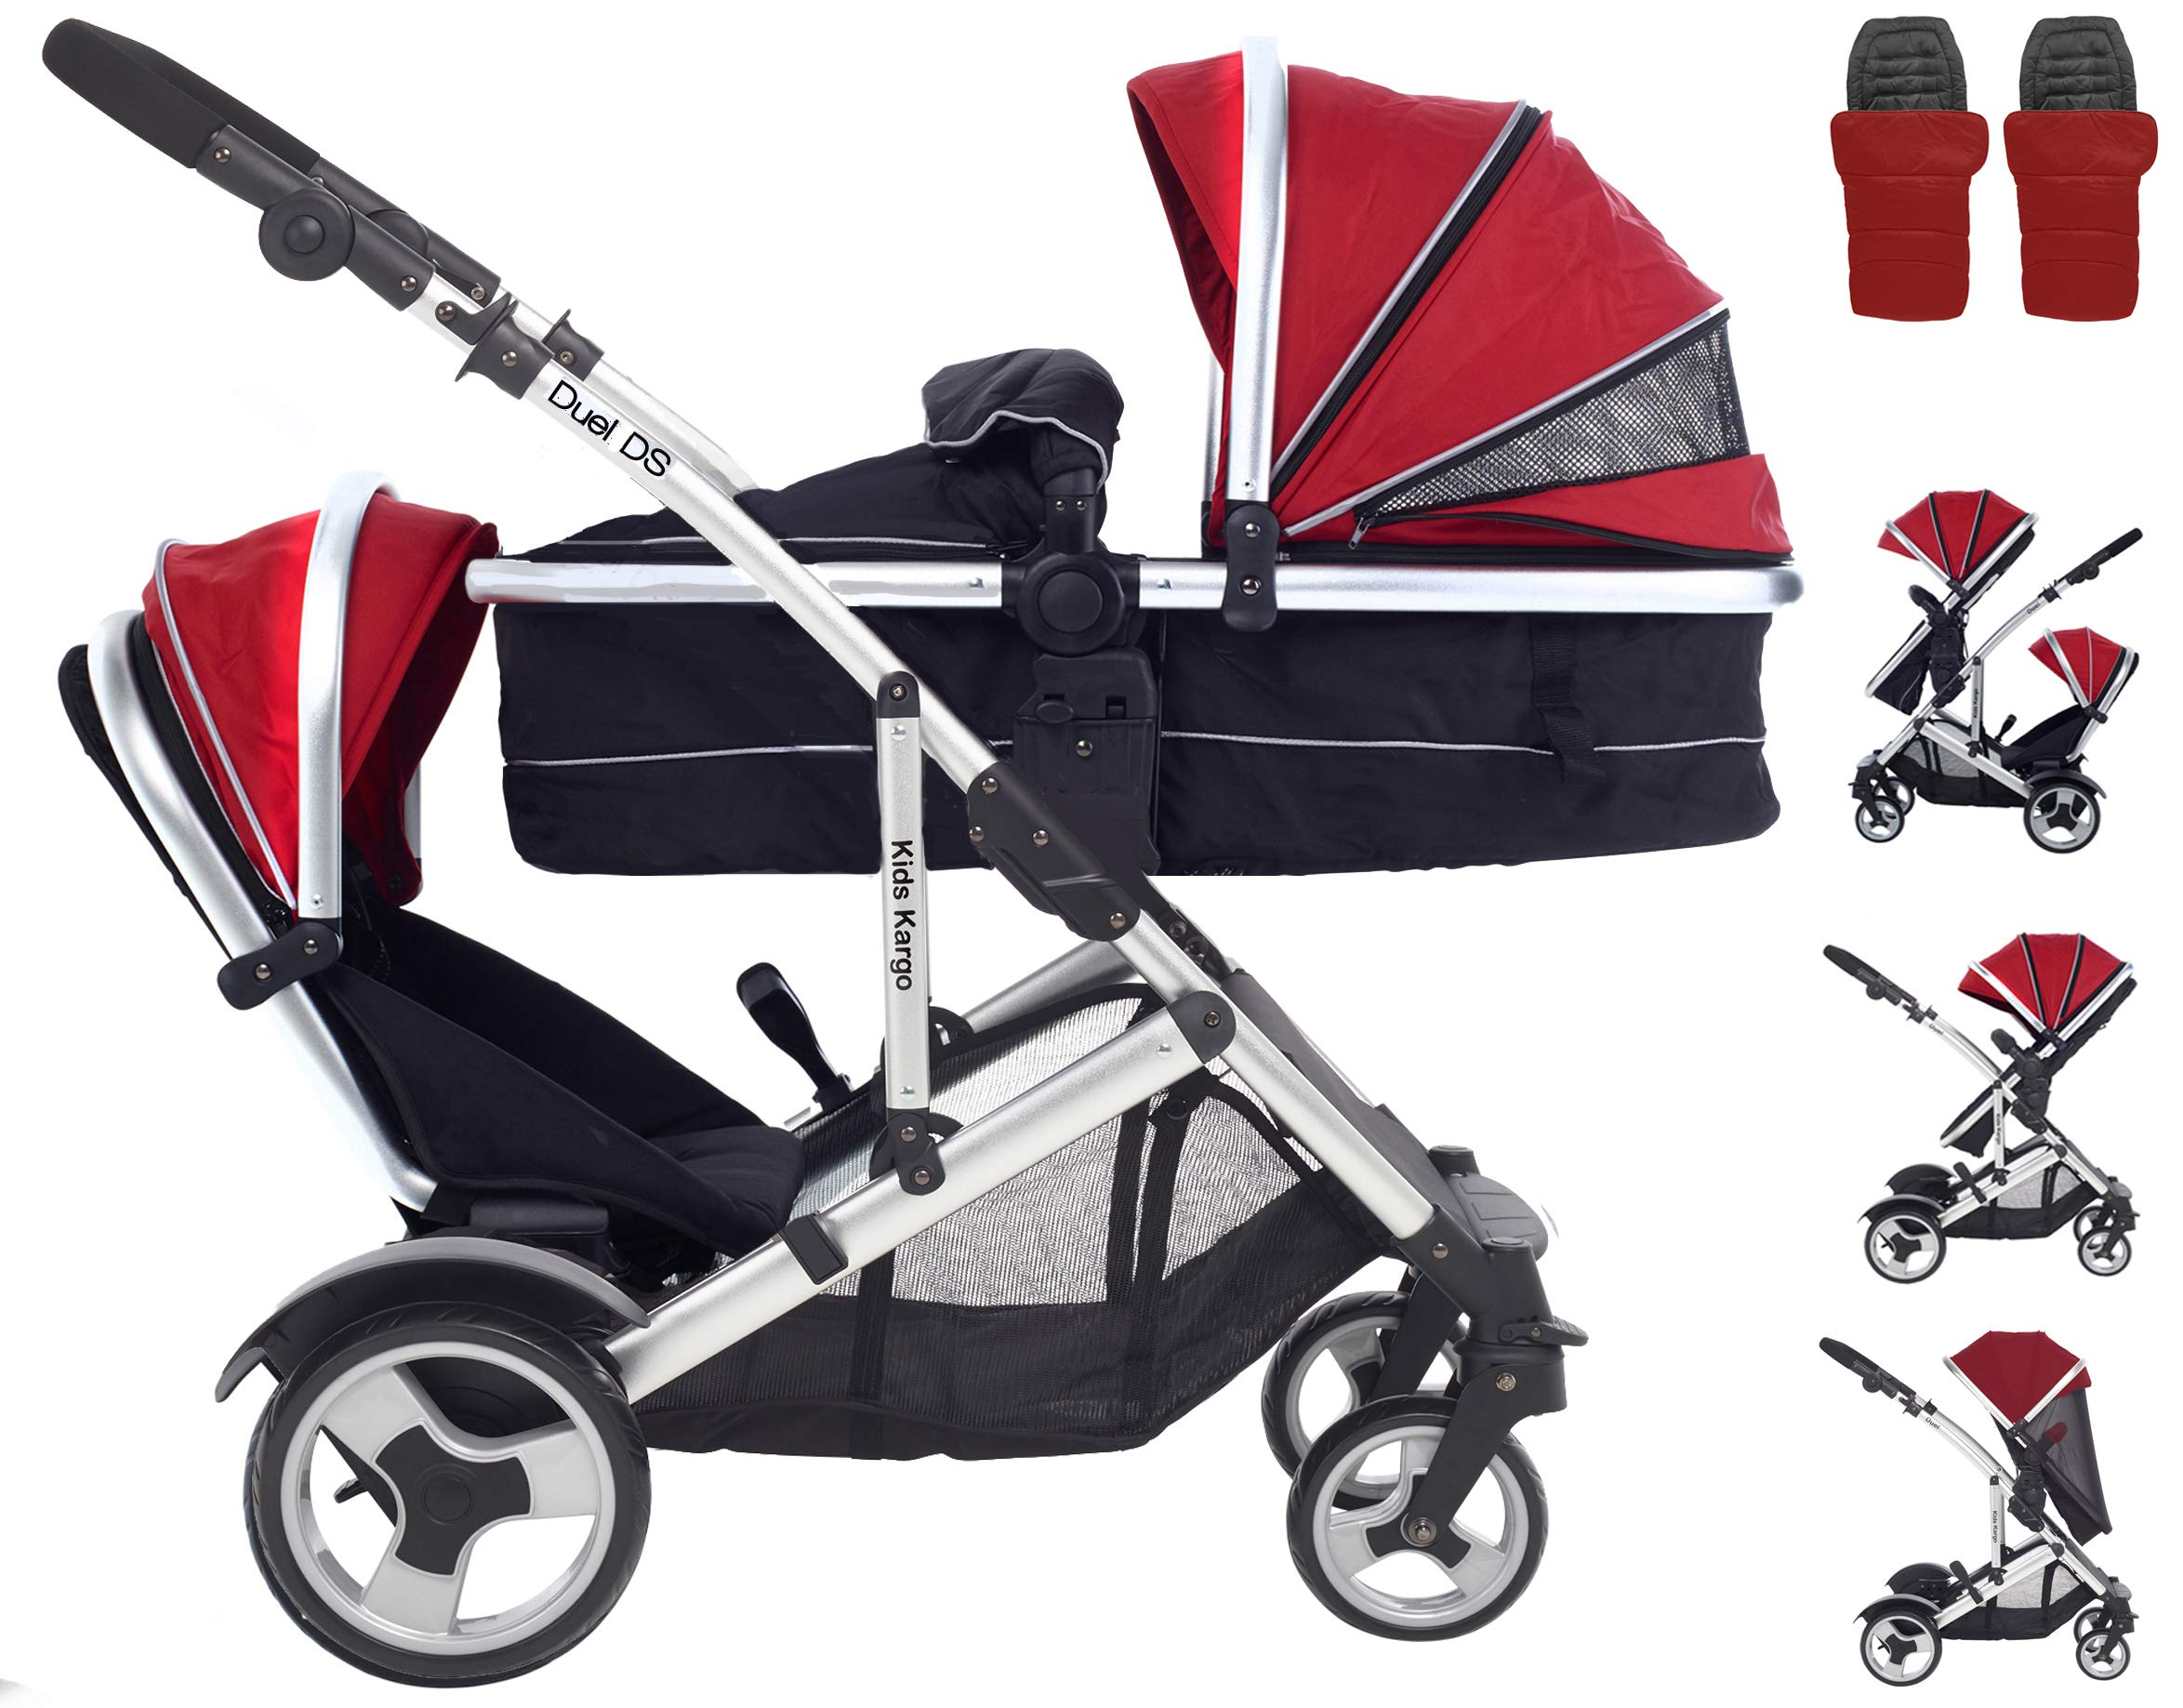 Kids Kargo Duel DS R. Includes 2 Footmuffs & 2 Rain-Covers. Red Double Tandem Pushchair Kids Kargo Suitable for newborns. Includes seat unit for toddler and carrycot. the carrycot when converted to seat unit, can be rear or forward facing. In-built suspension, adjustable handle, complete with rain covers. 1